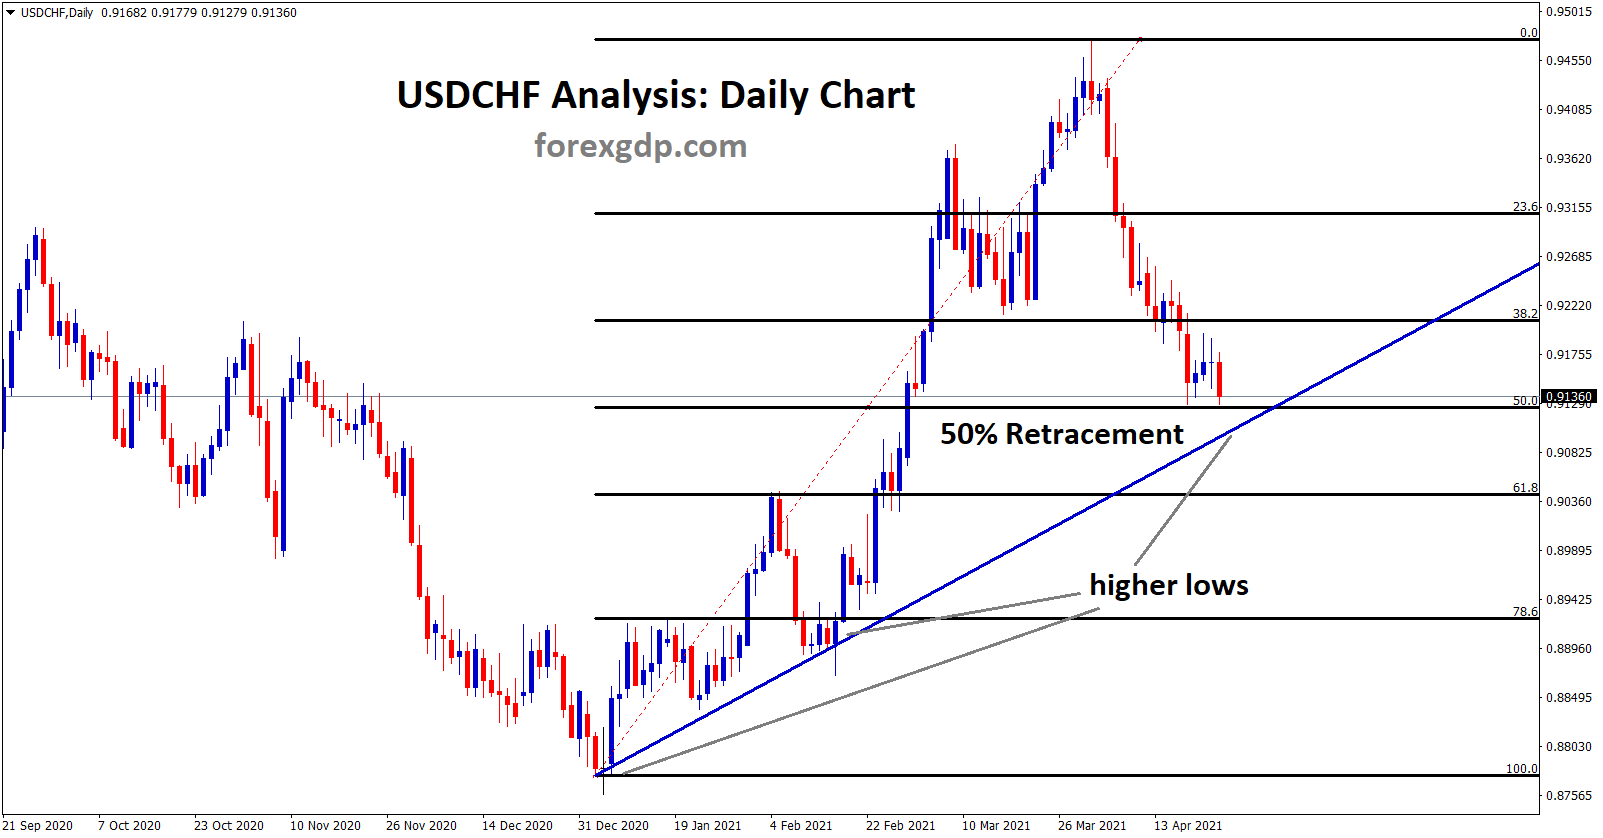 USDCHF made 50 retracement and near to the higher low level